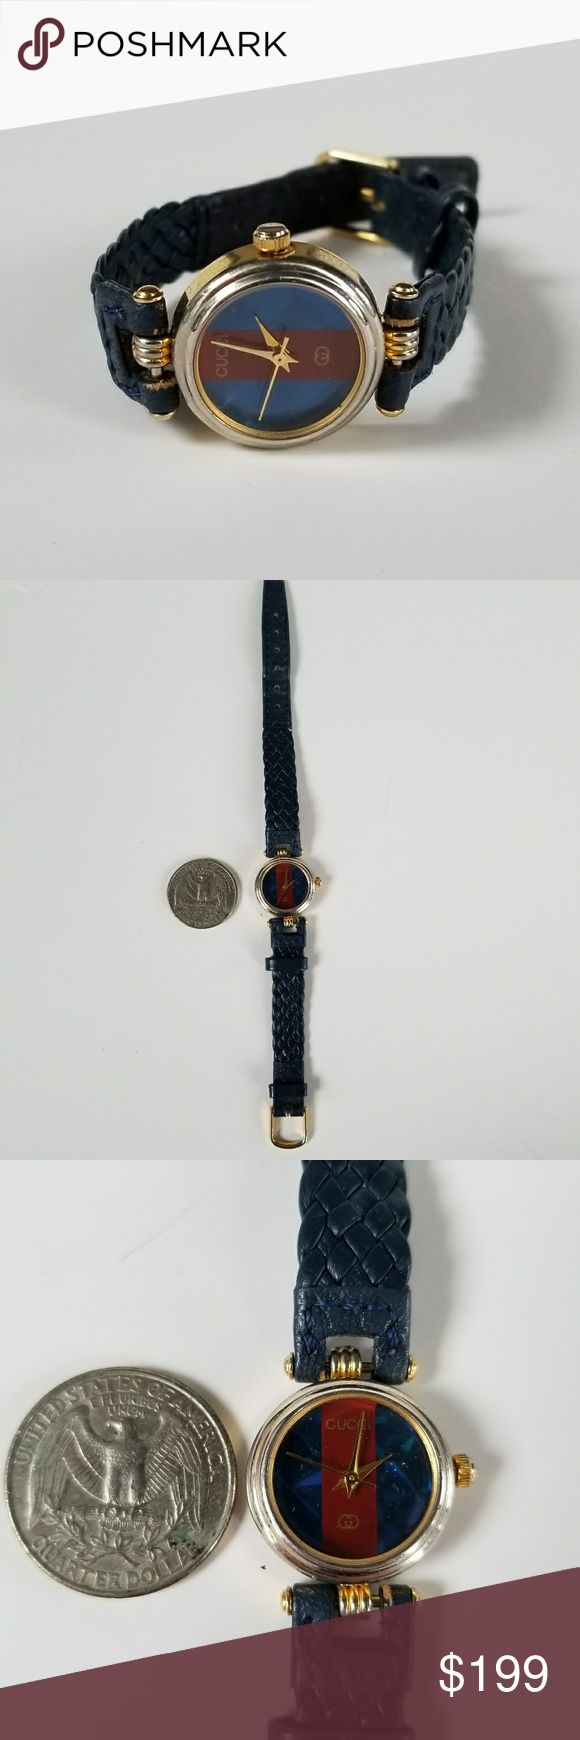 Gucci Leather Ladies Watch Authentic vintage 1980s Gucci leather ladies watch. In working condition! Iconic Gucci red and blue stripe face and blue leather band. Gucci Accessories Watches